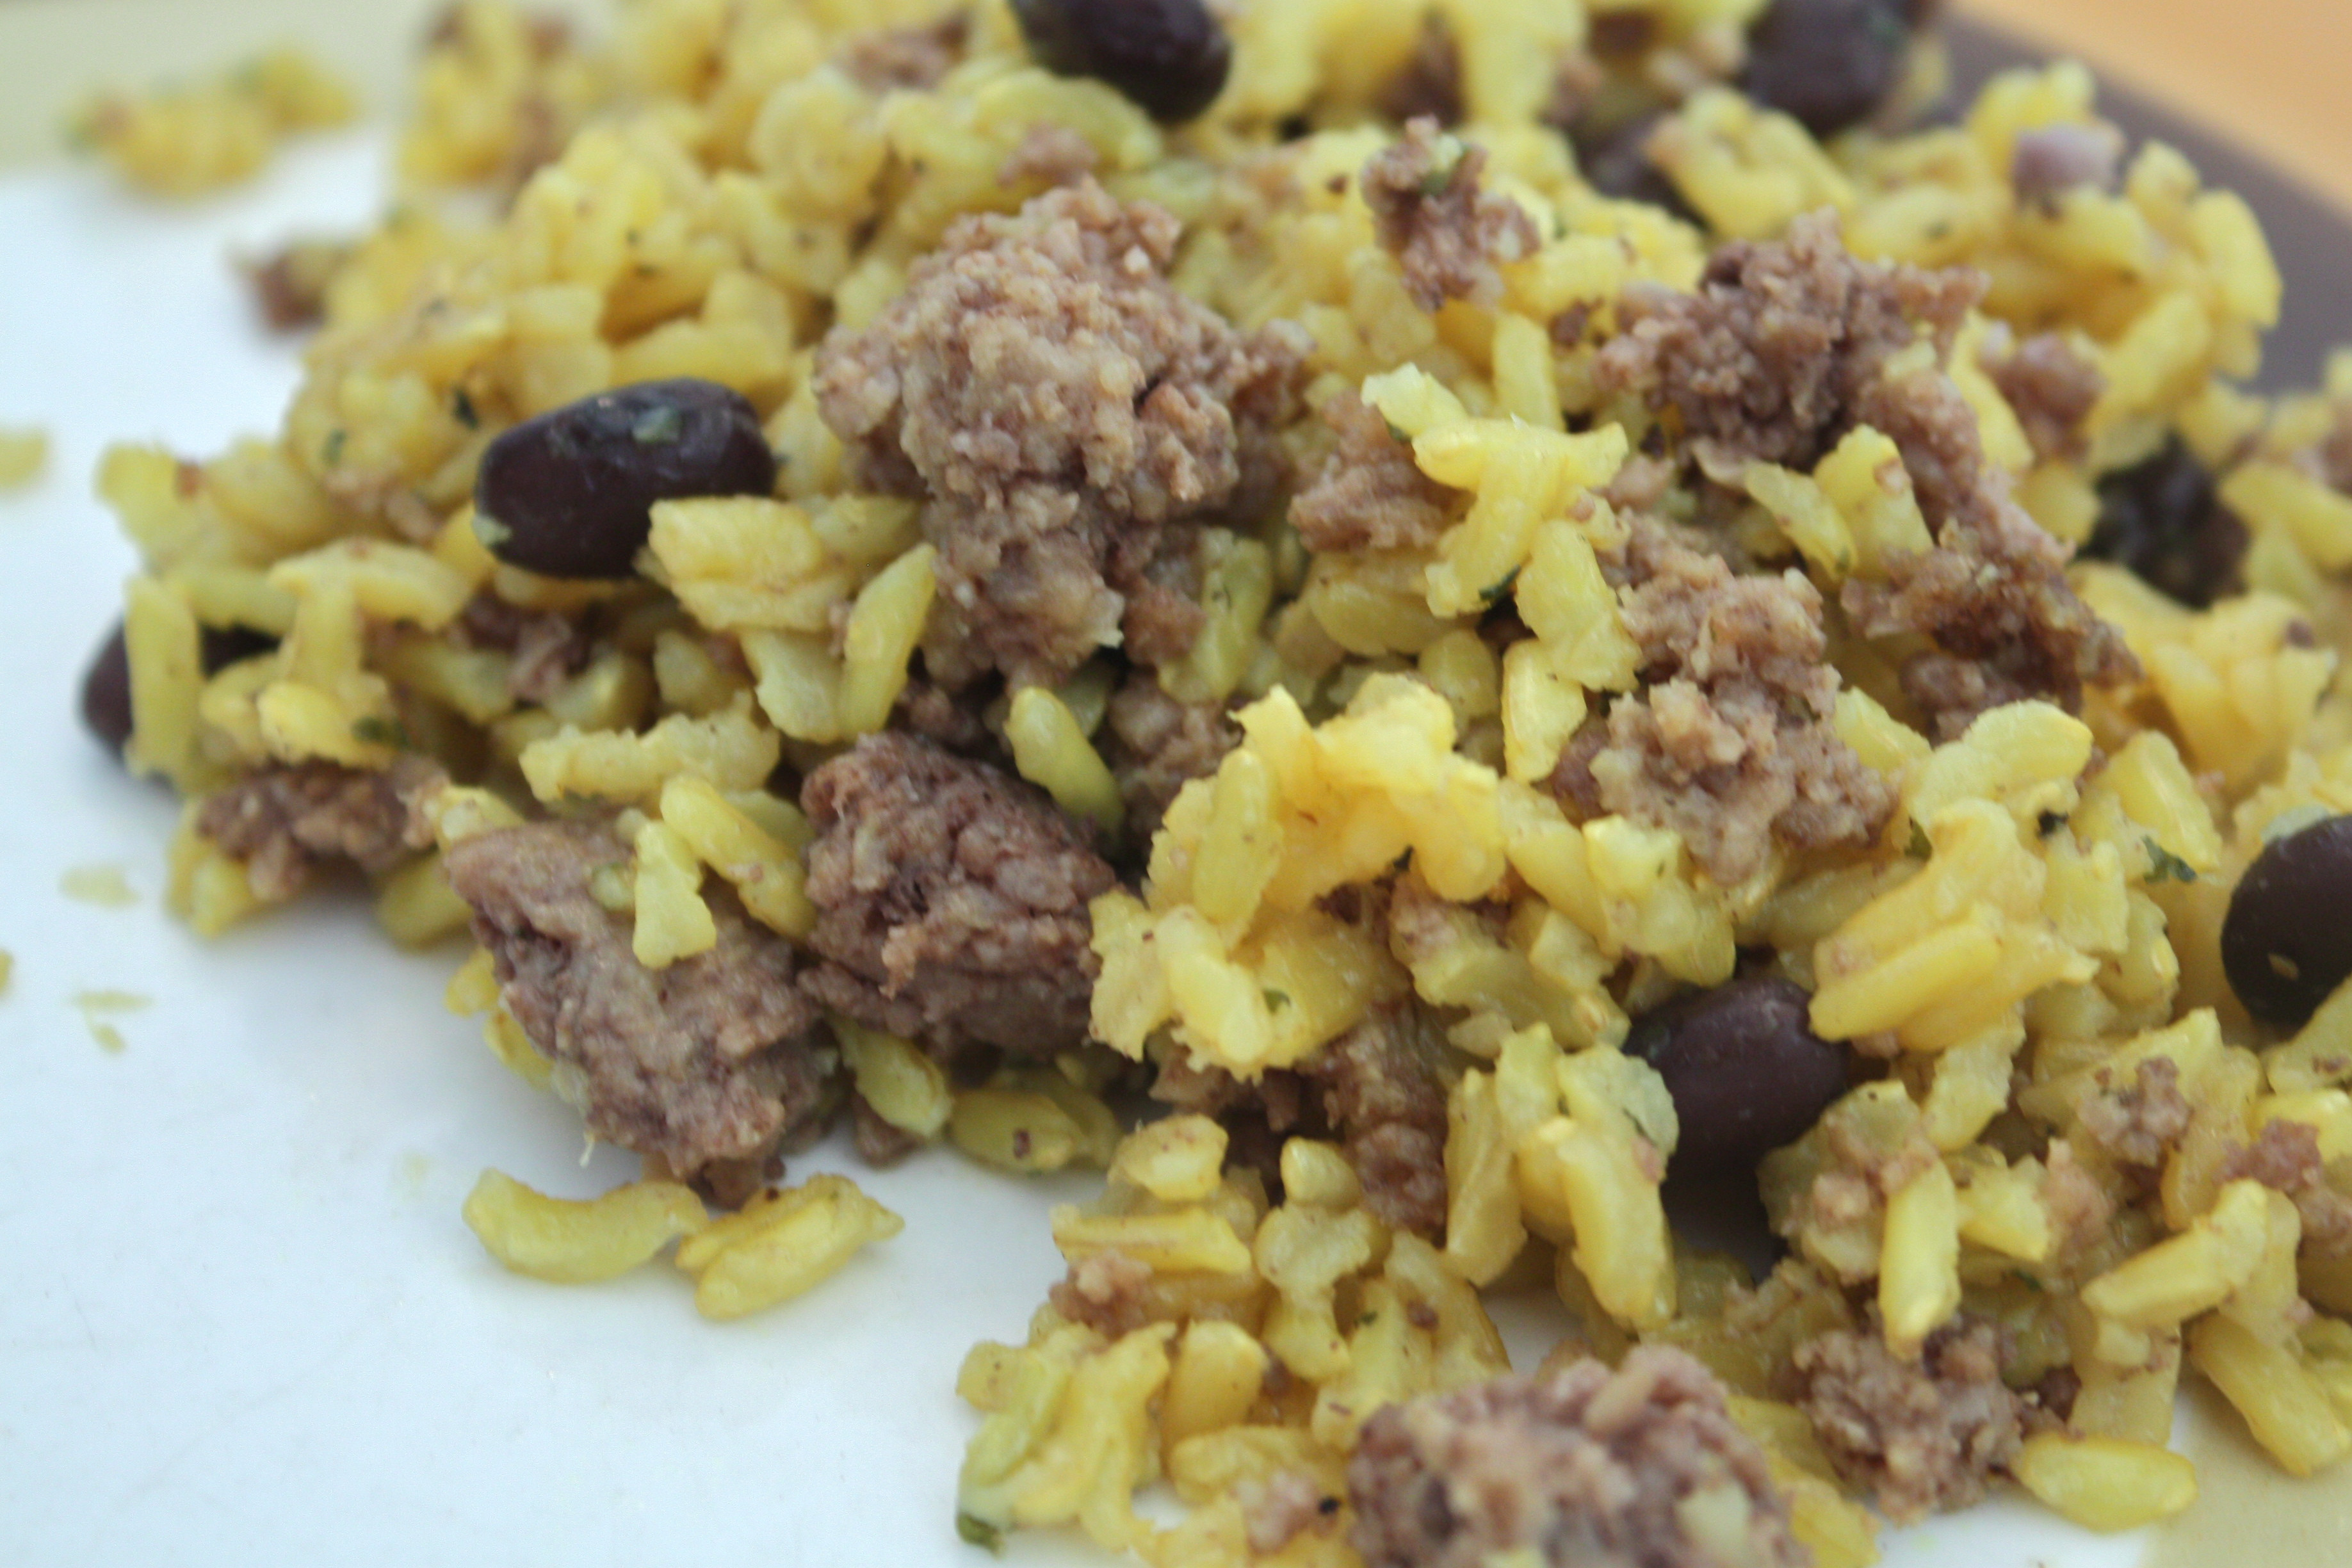 Ground Beef And Rice Recipes Healthy  Ground Beef Rice and Beans Anne Jisca s Healthy Pursuits